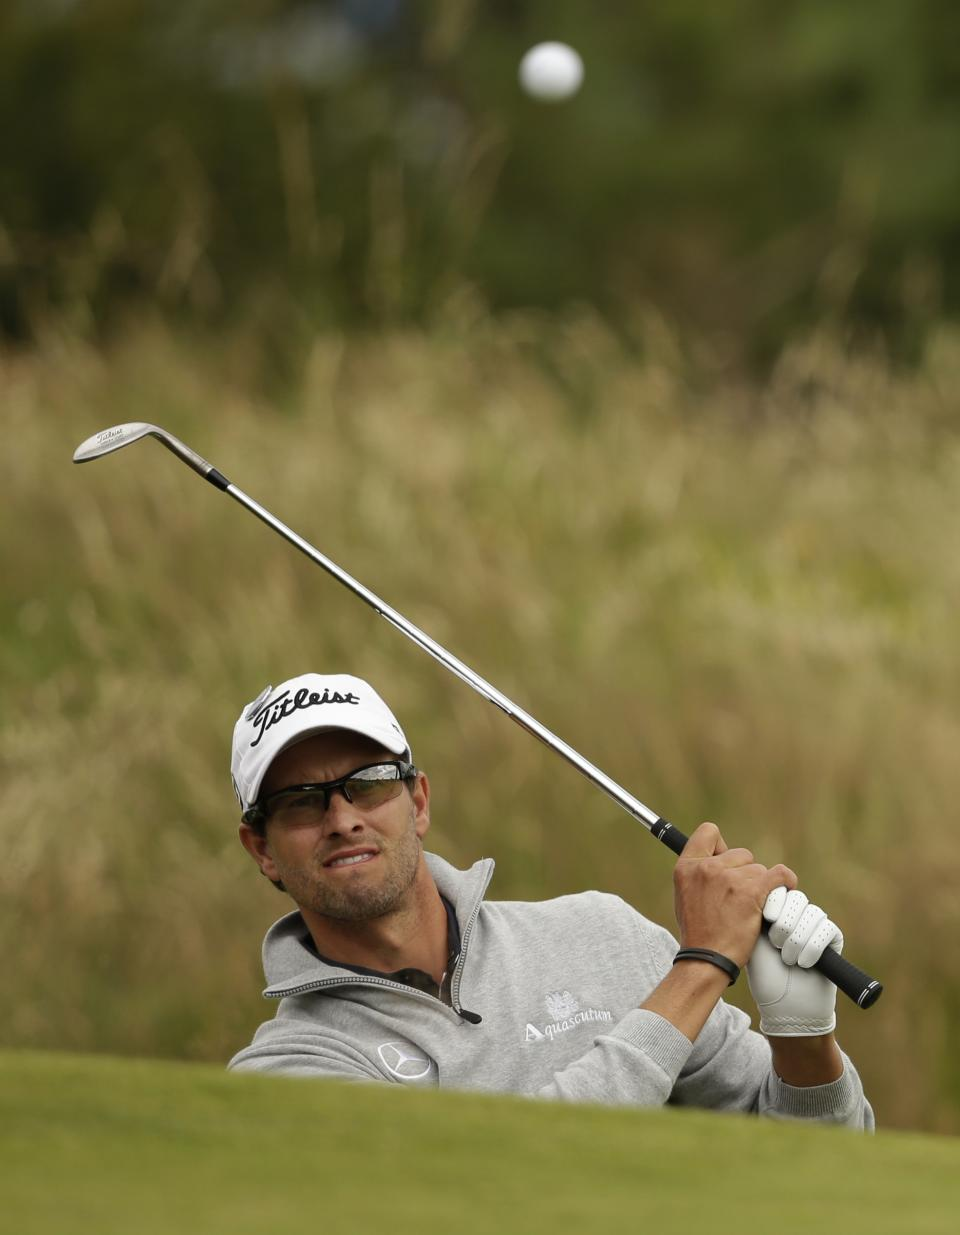 Adam Scott of Australia plays out of a bunker on the 12th hole at Royal Lytham & St Annes golf club during the second round of the British Open Golf Championship, Lytham St Annes, England, Friday, July 20, 2012. (AP Photo/Tim Hales)